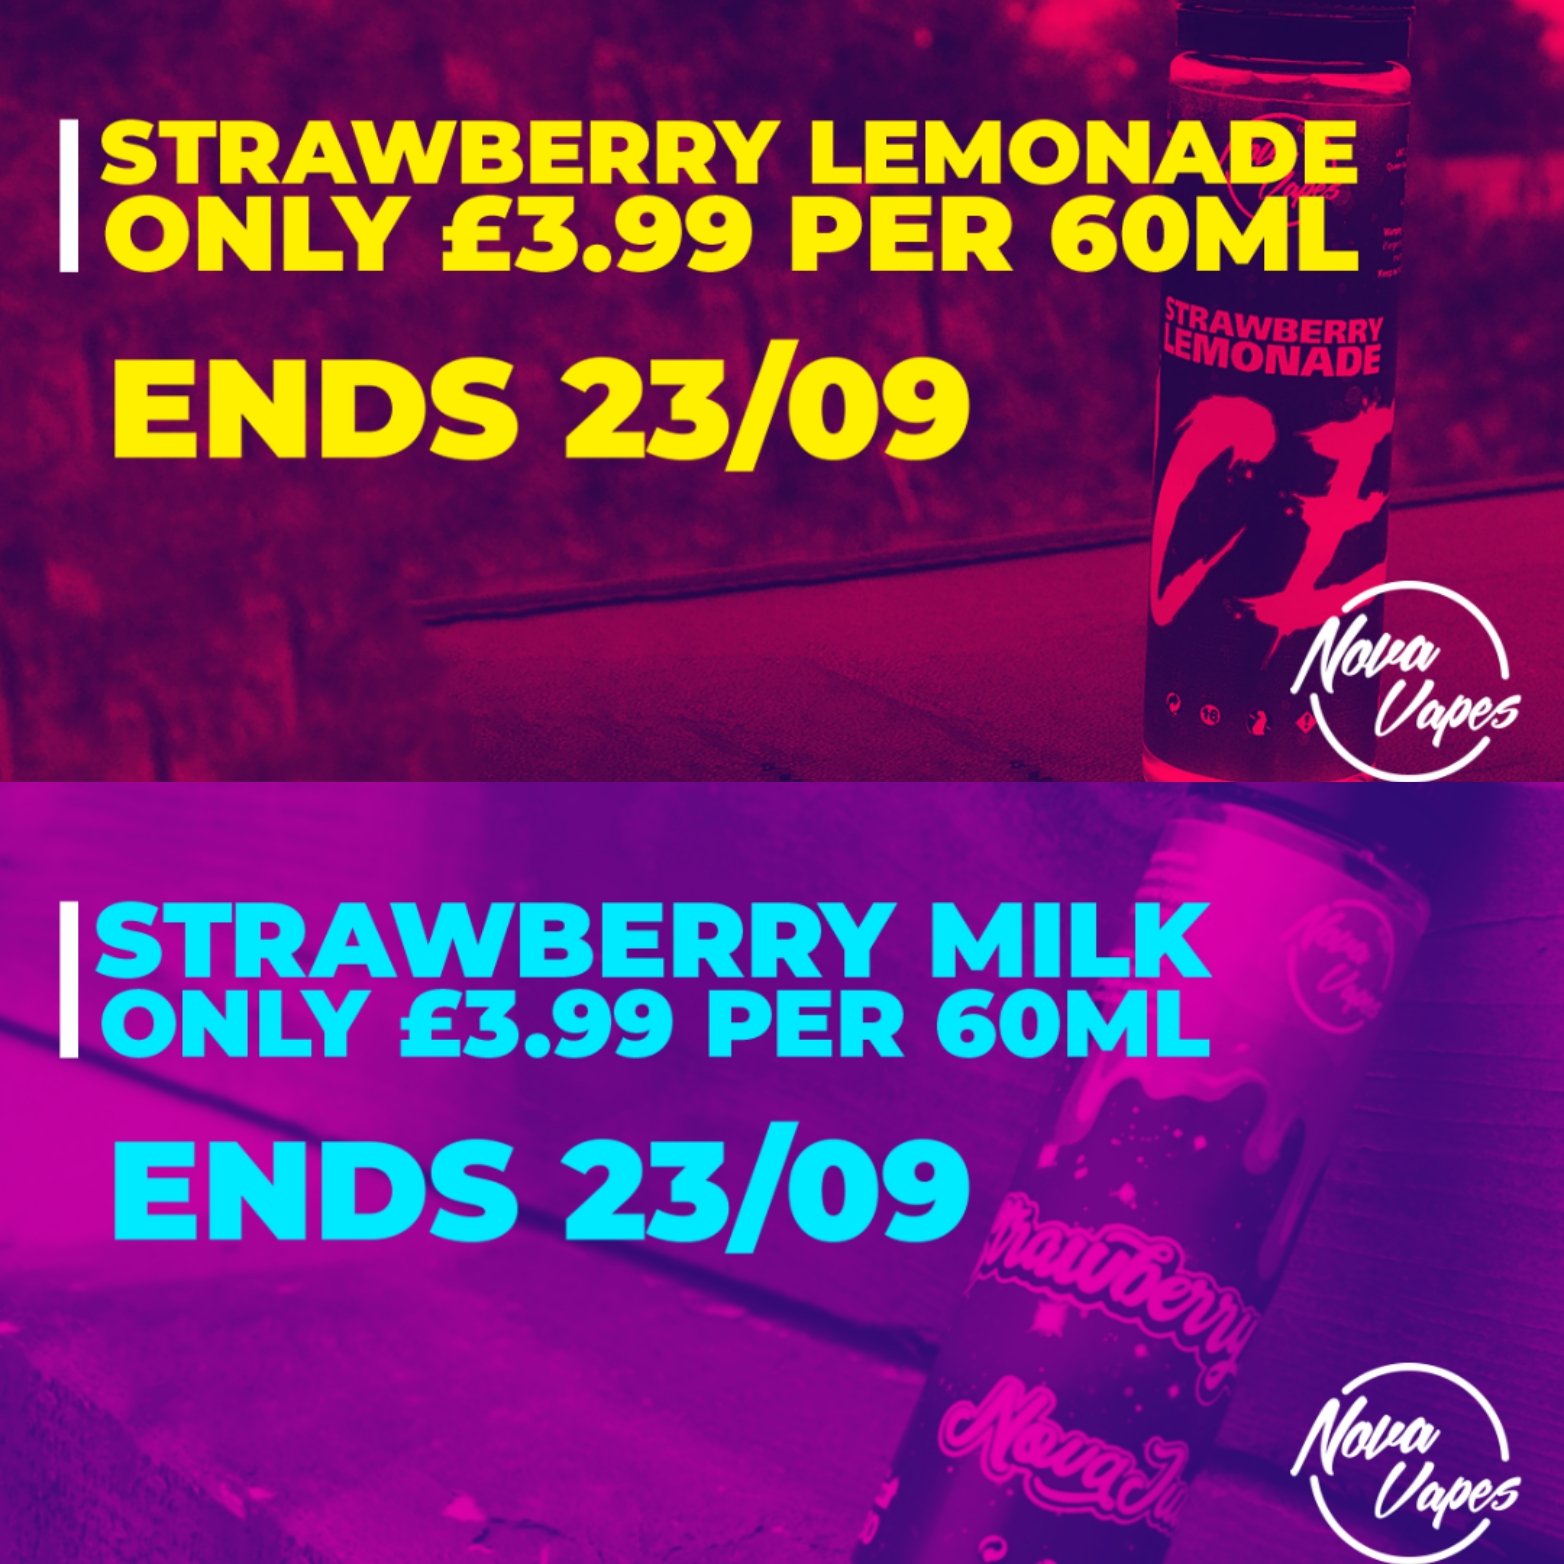 Strawberry Milk and Strawberry Lemonade 60ml £3.99